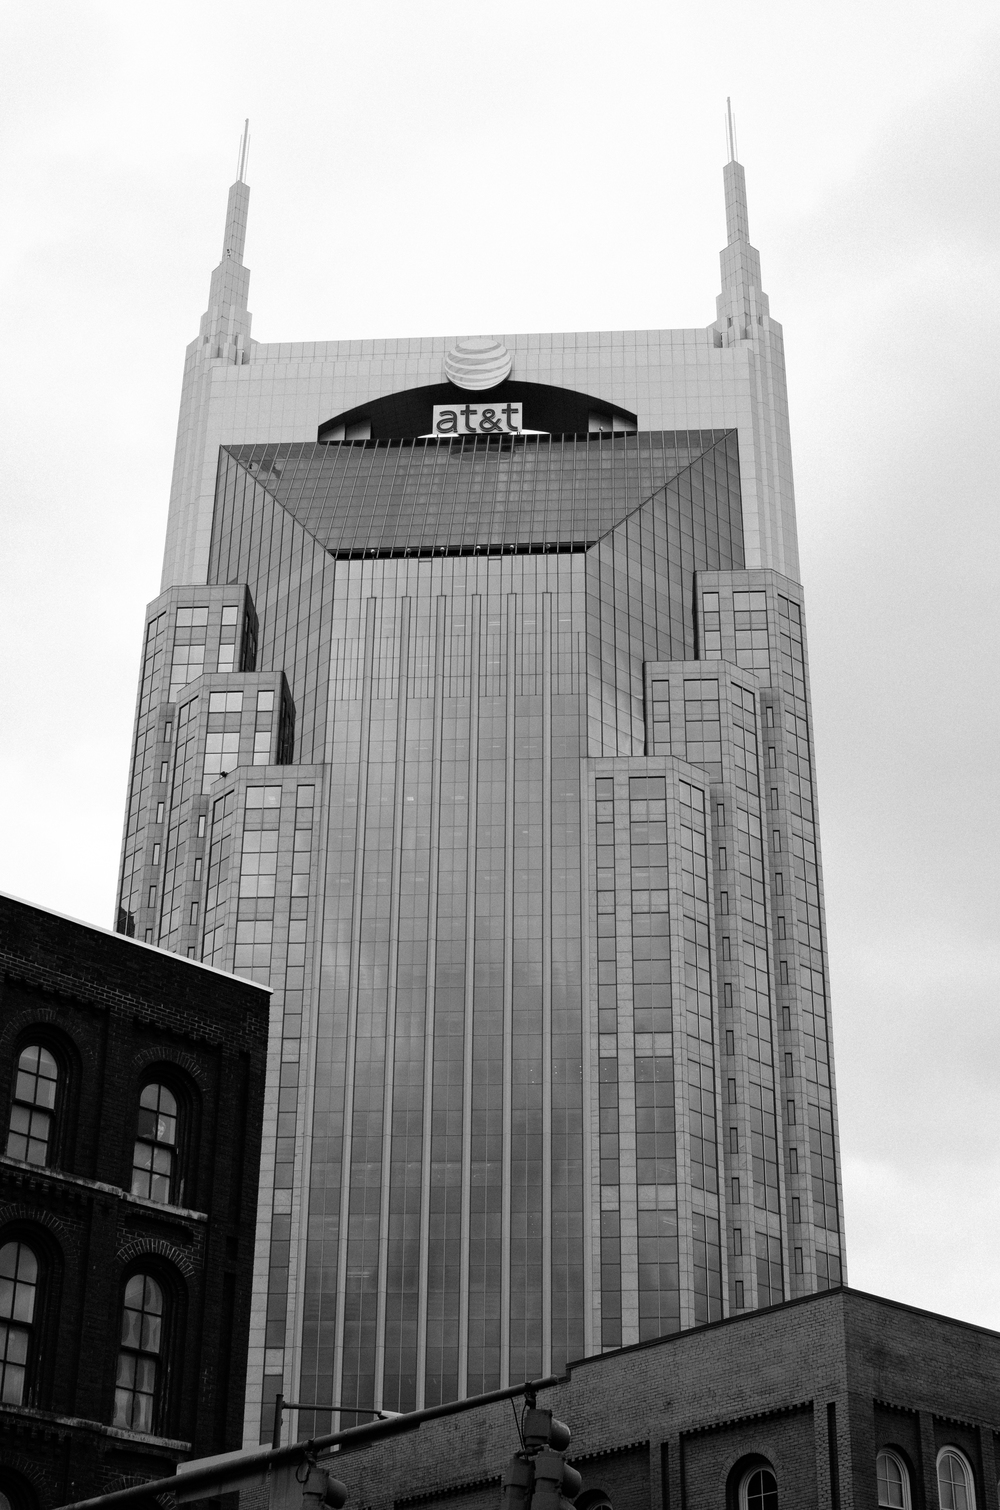 Batman building Nashville, TN